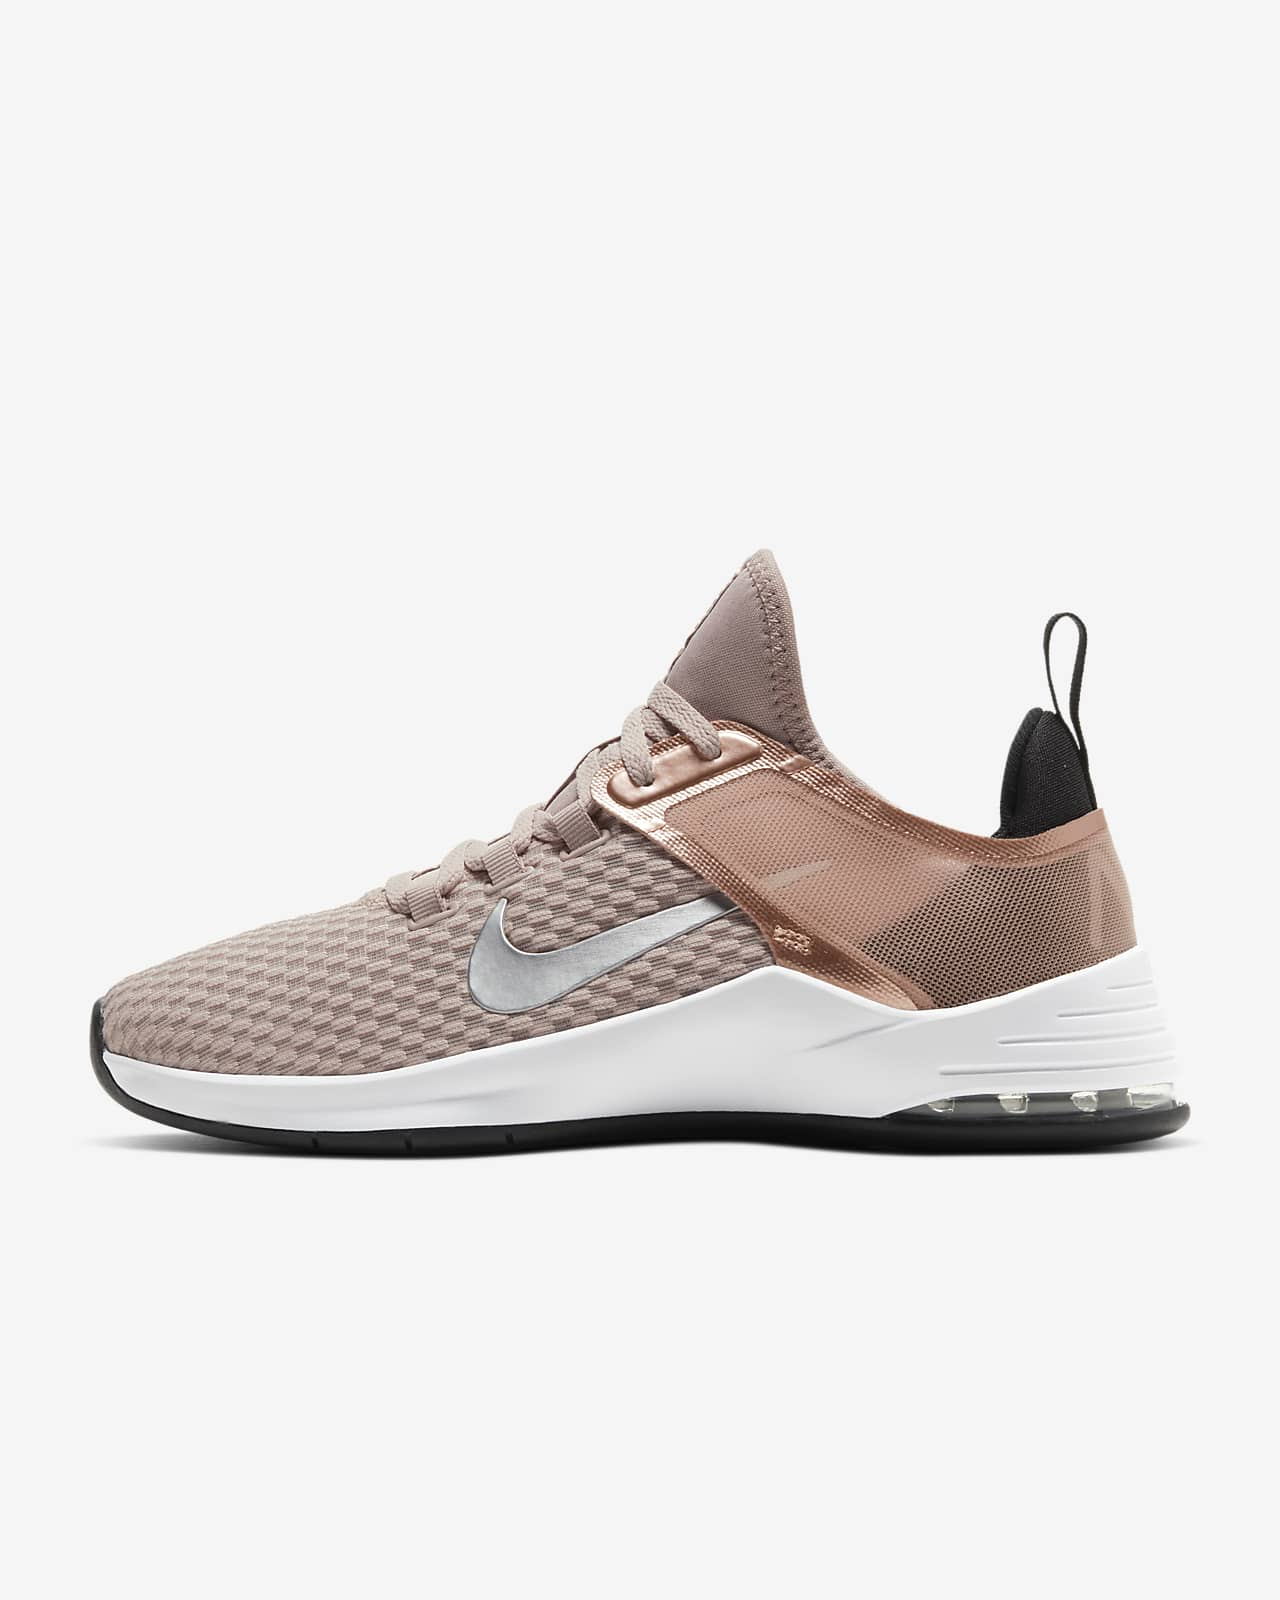 Nike Air Max Bella TR 2 Women's Training Shoe